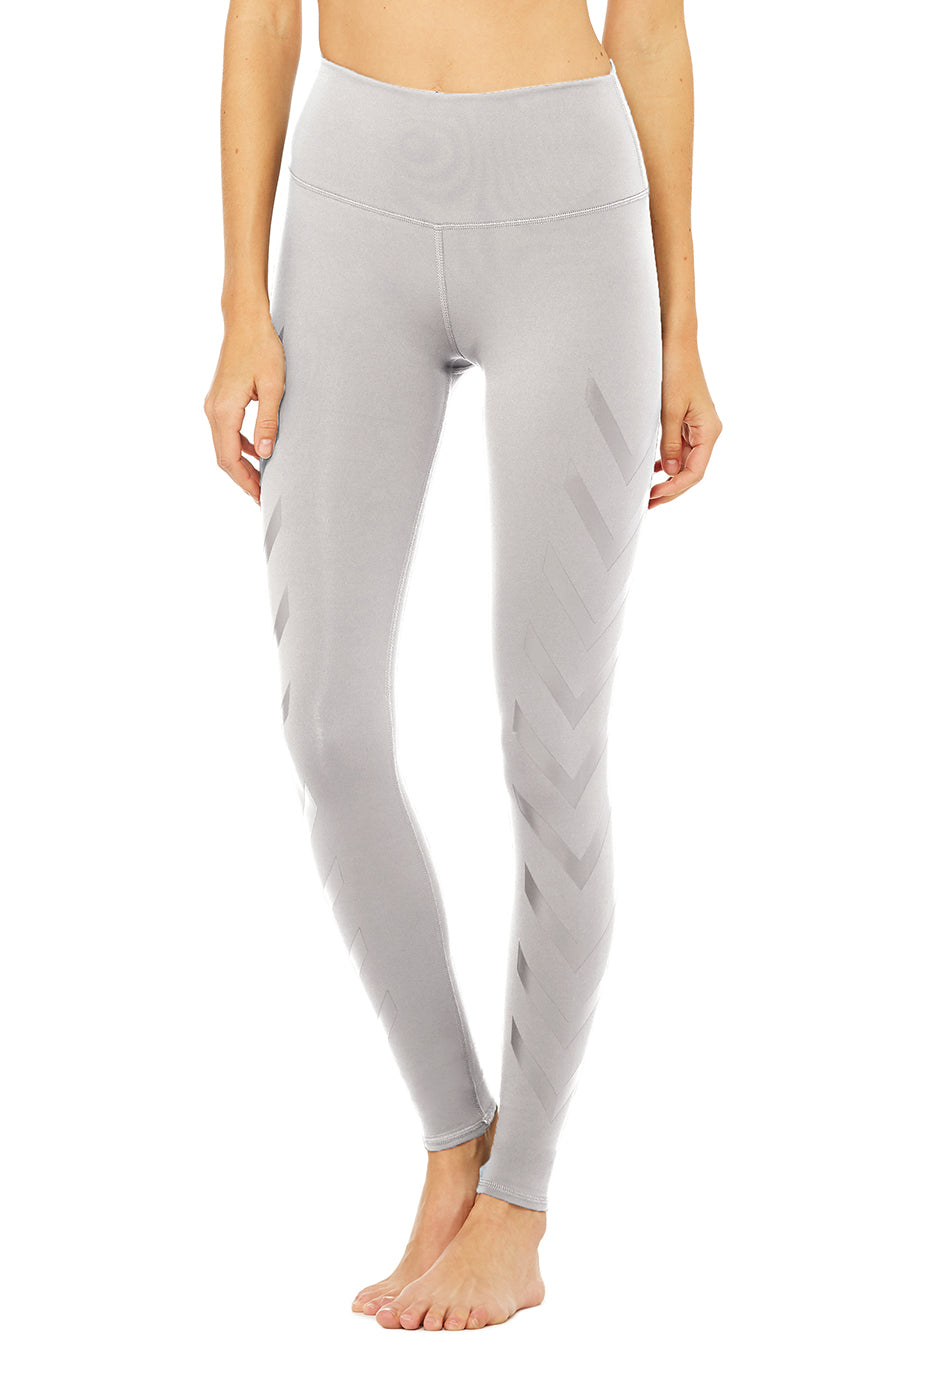 High-Waist Airbrush Legging - Dove Grey/Alo Class/Dv Gry